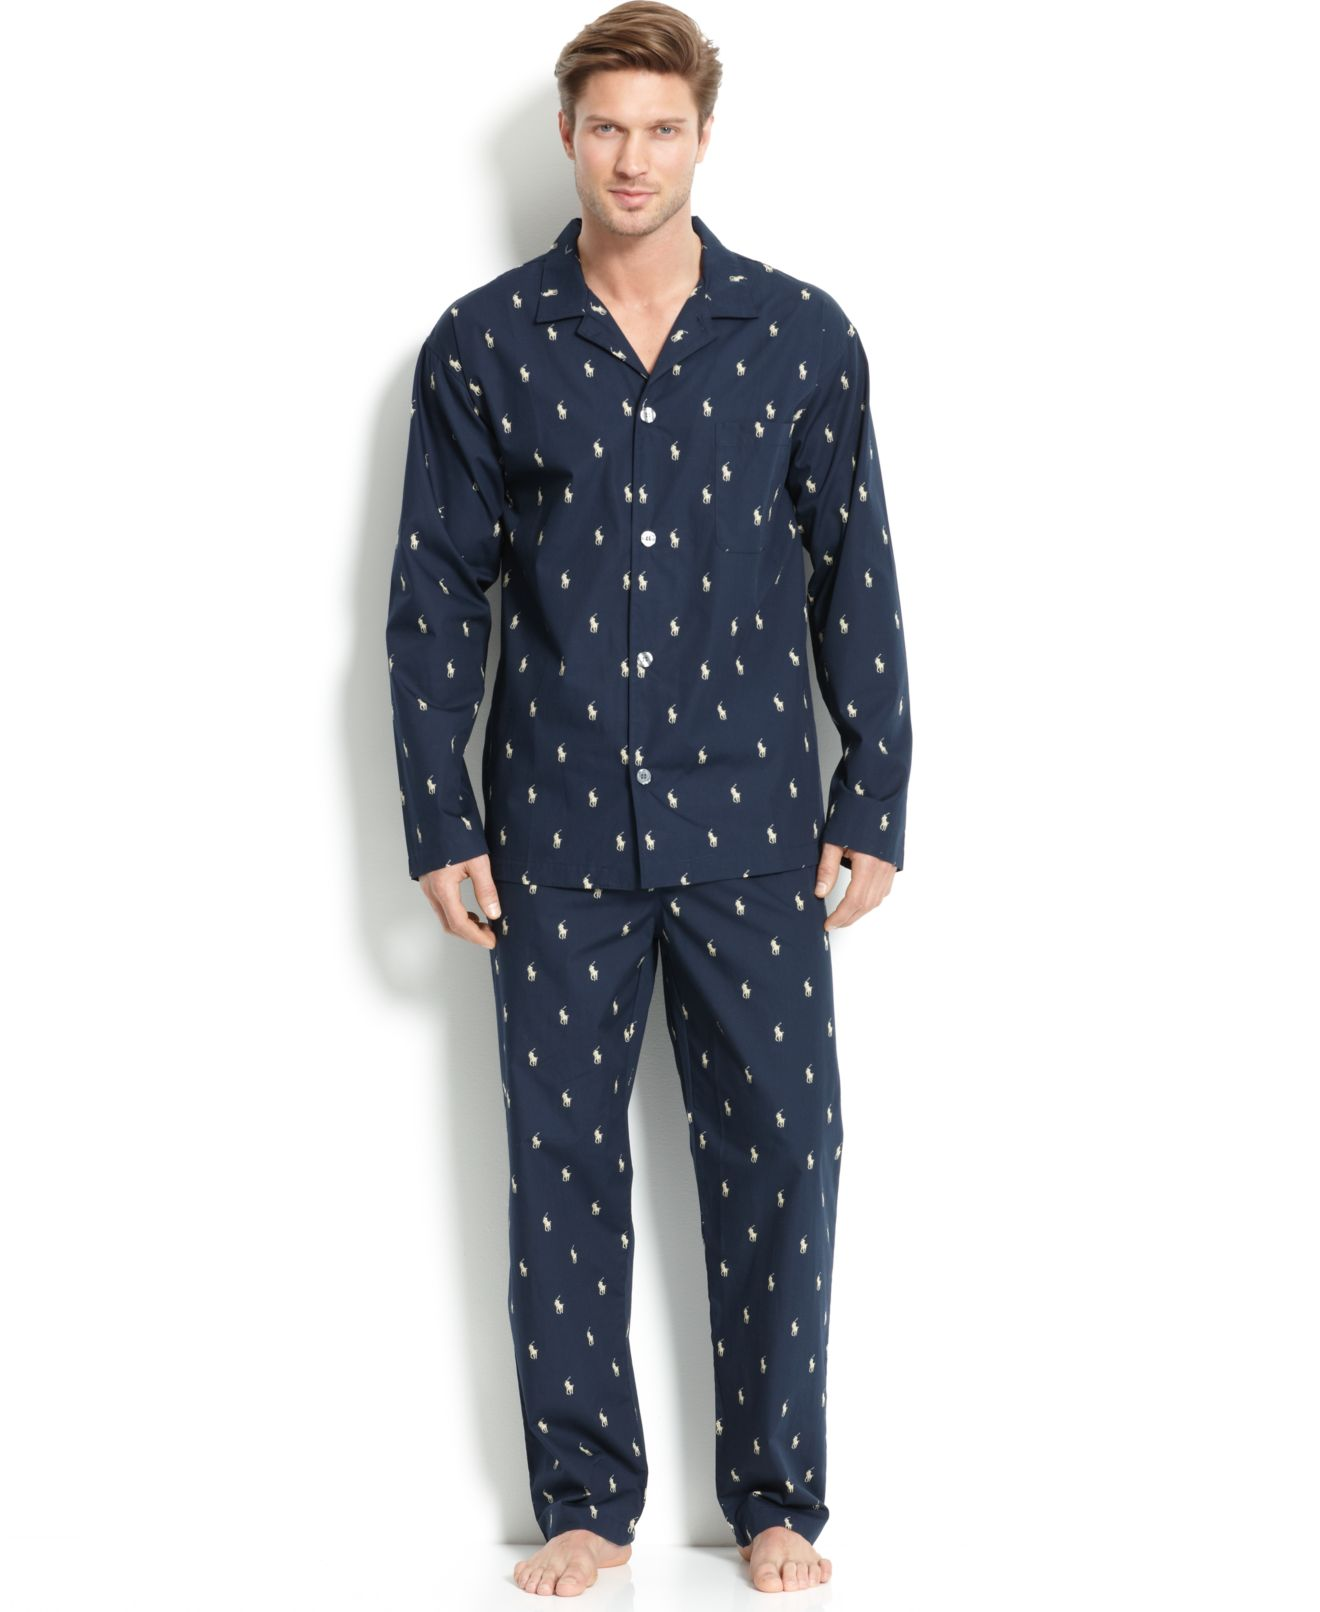 More Details Neiman Marcus Woven Pajama Set with Piping Details EXCLUSIVELY AT NEIMAN MARCUS Men's two-piece pajama set. Contrast piping at collar, cuffs and pockets. Notched collar; button front. Chest and waist patch pockets. Matching pajama bottoms with adjustable waistband.